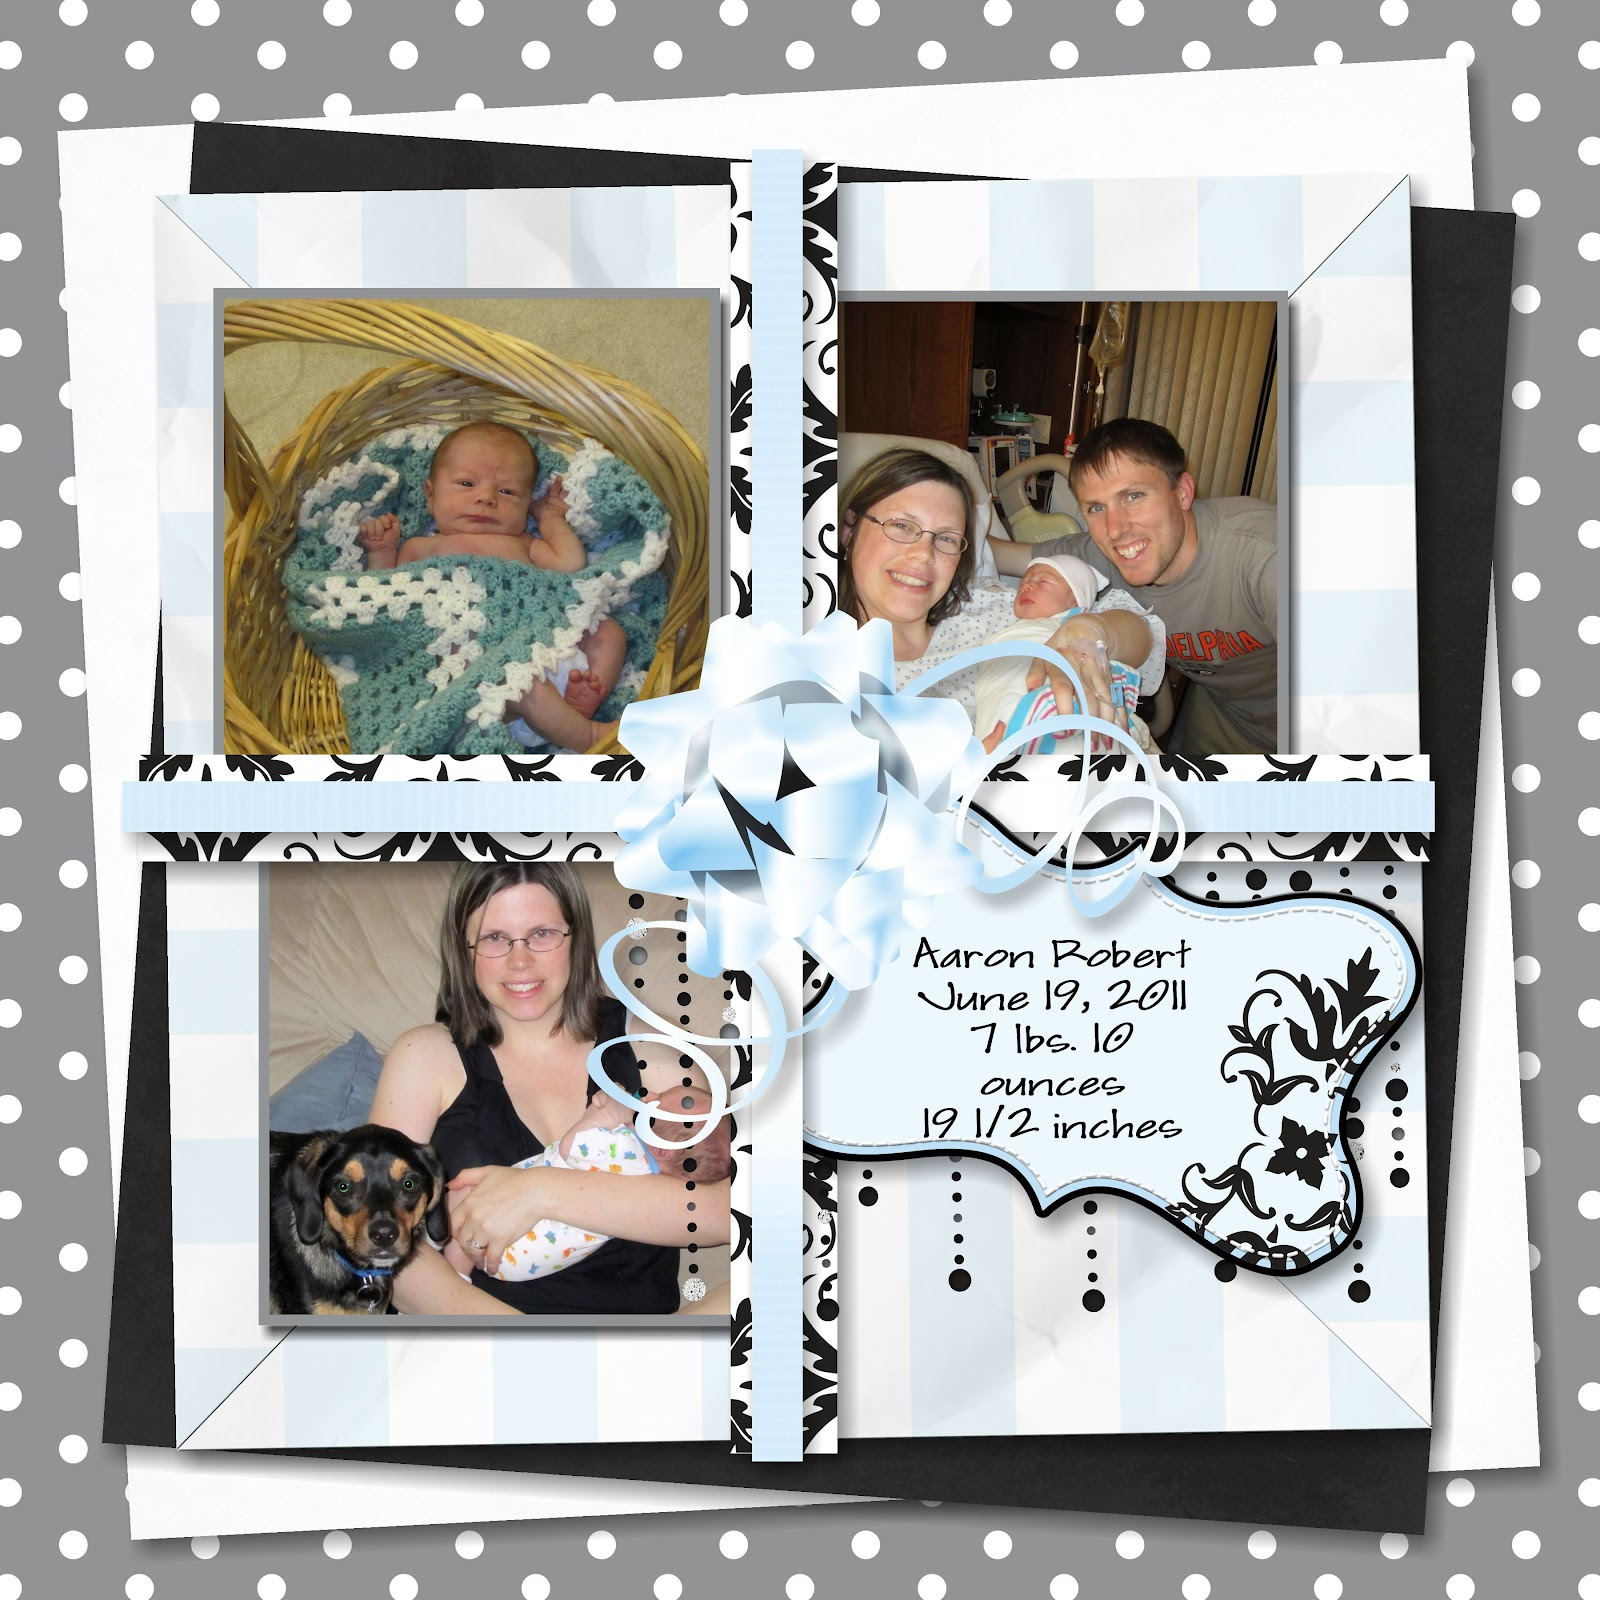 How to make scrapbook for husband - Another Thing I Wanted To Use The Scrapbooking Software For Was To Make Scrapbook Pages For My Husband For Father S Day Before My Son Was Born